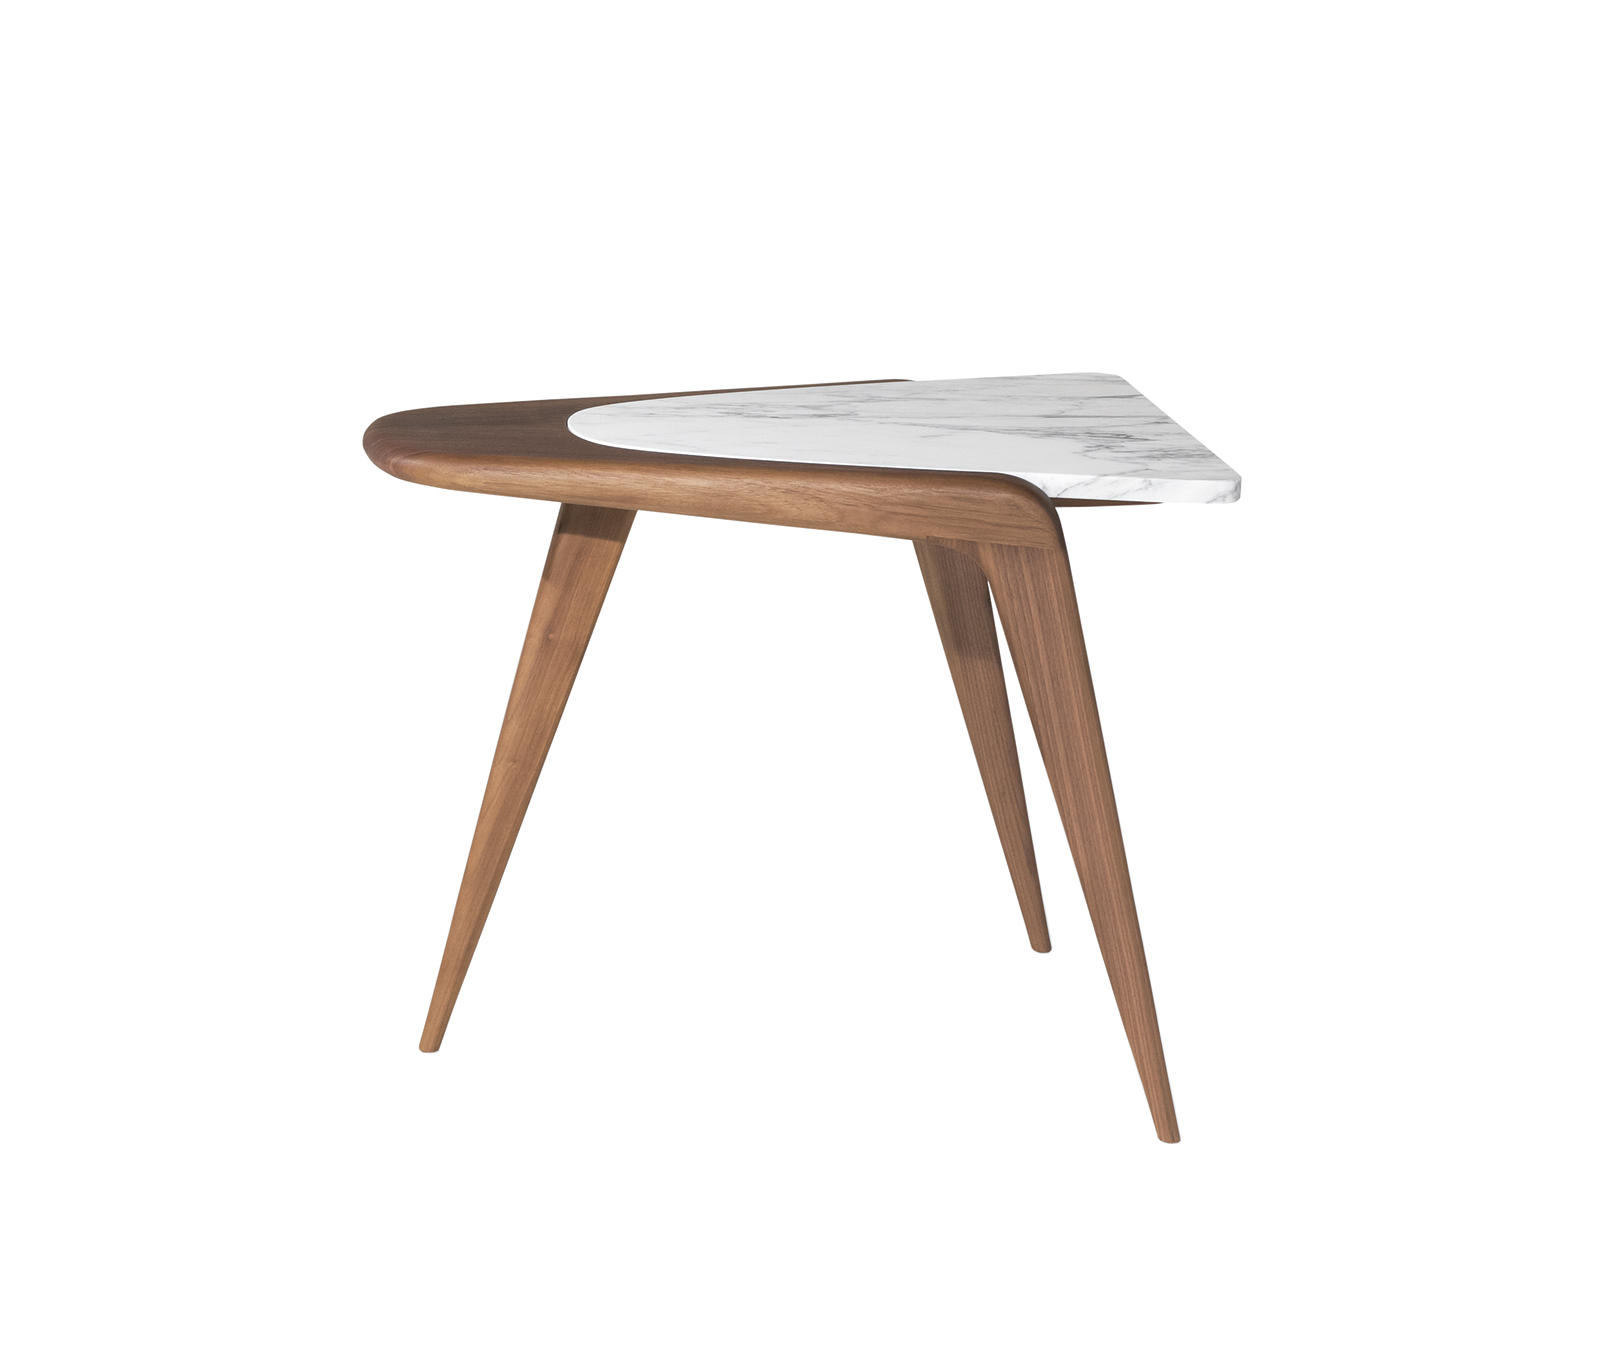 Charlie Coffee Table Side Tables From Vladimir Kagan